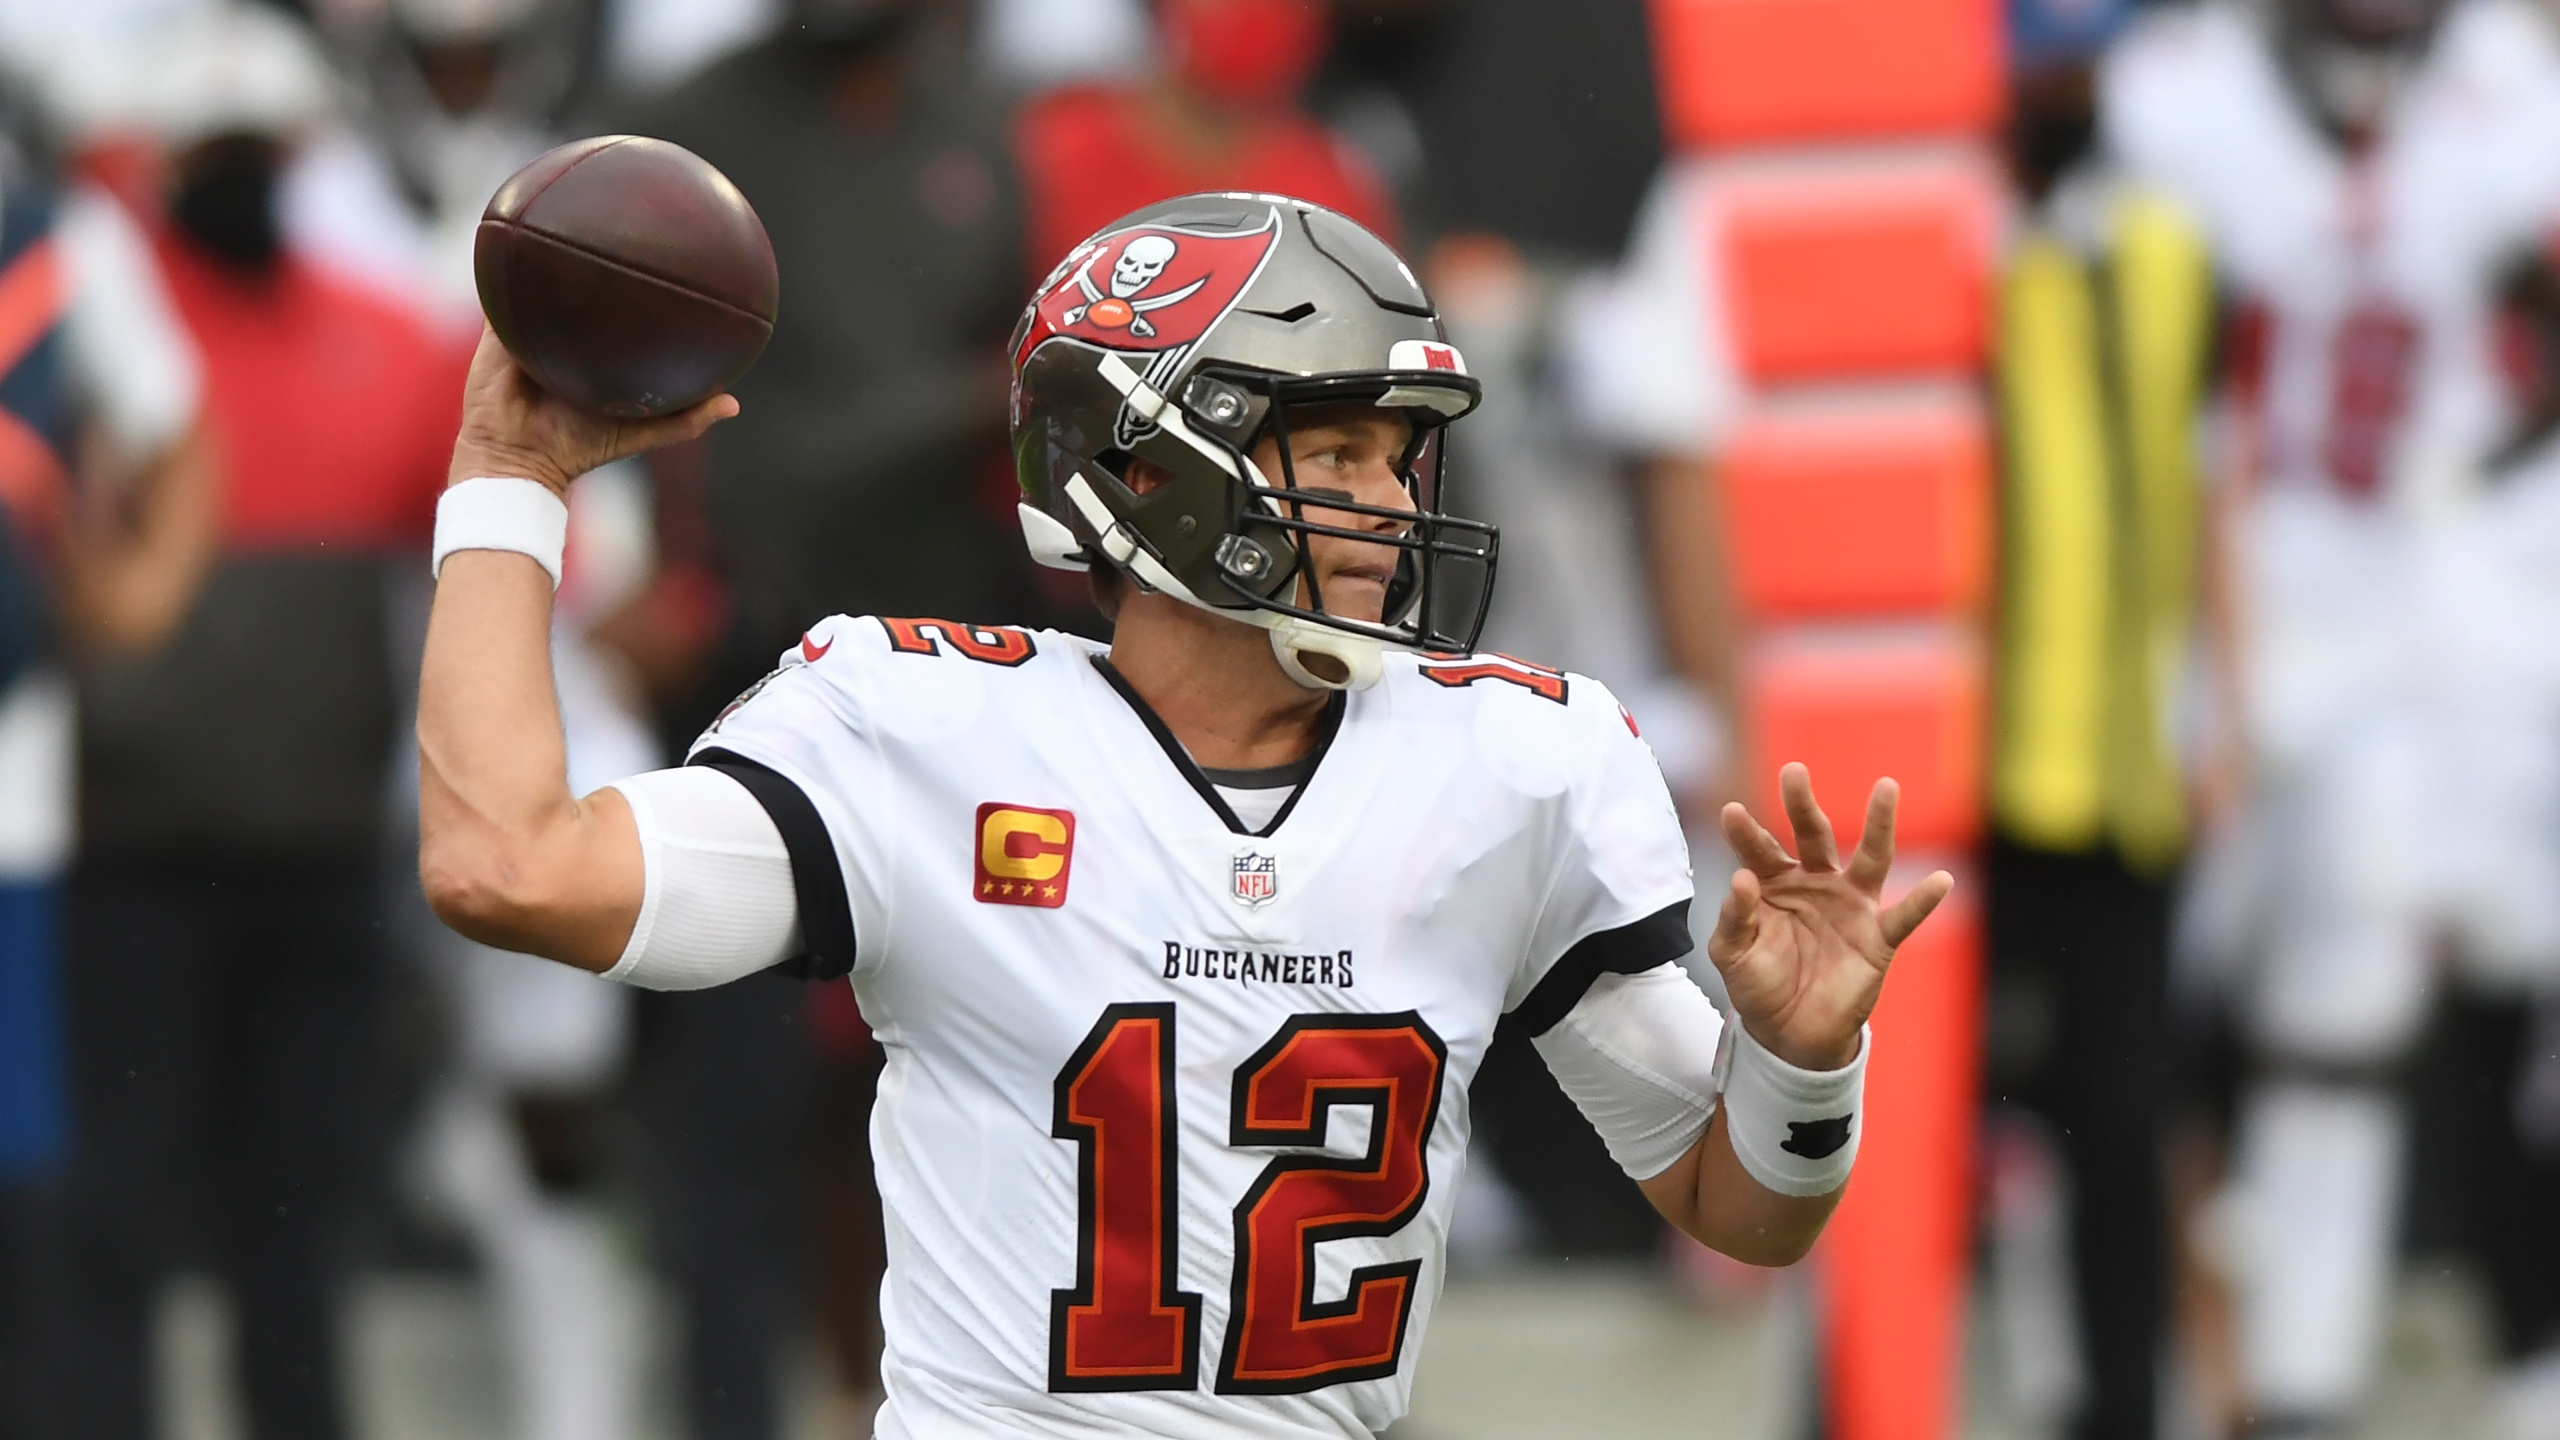 live game updates tampa bay buccaneers vs chicago bears wfla https www wfla com sports live game updates tampa bay buccaneers vs chicago bears